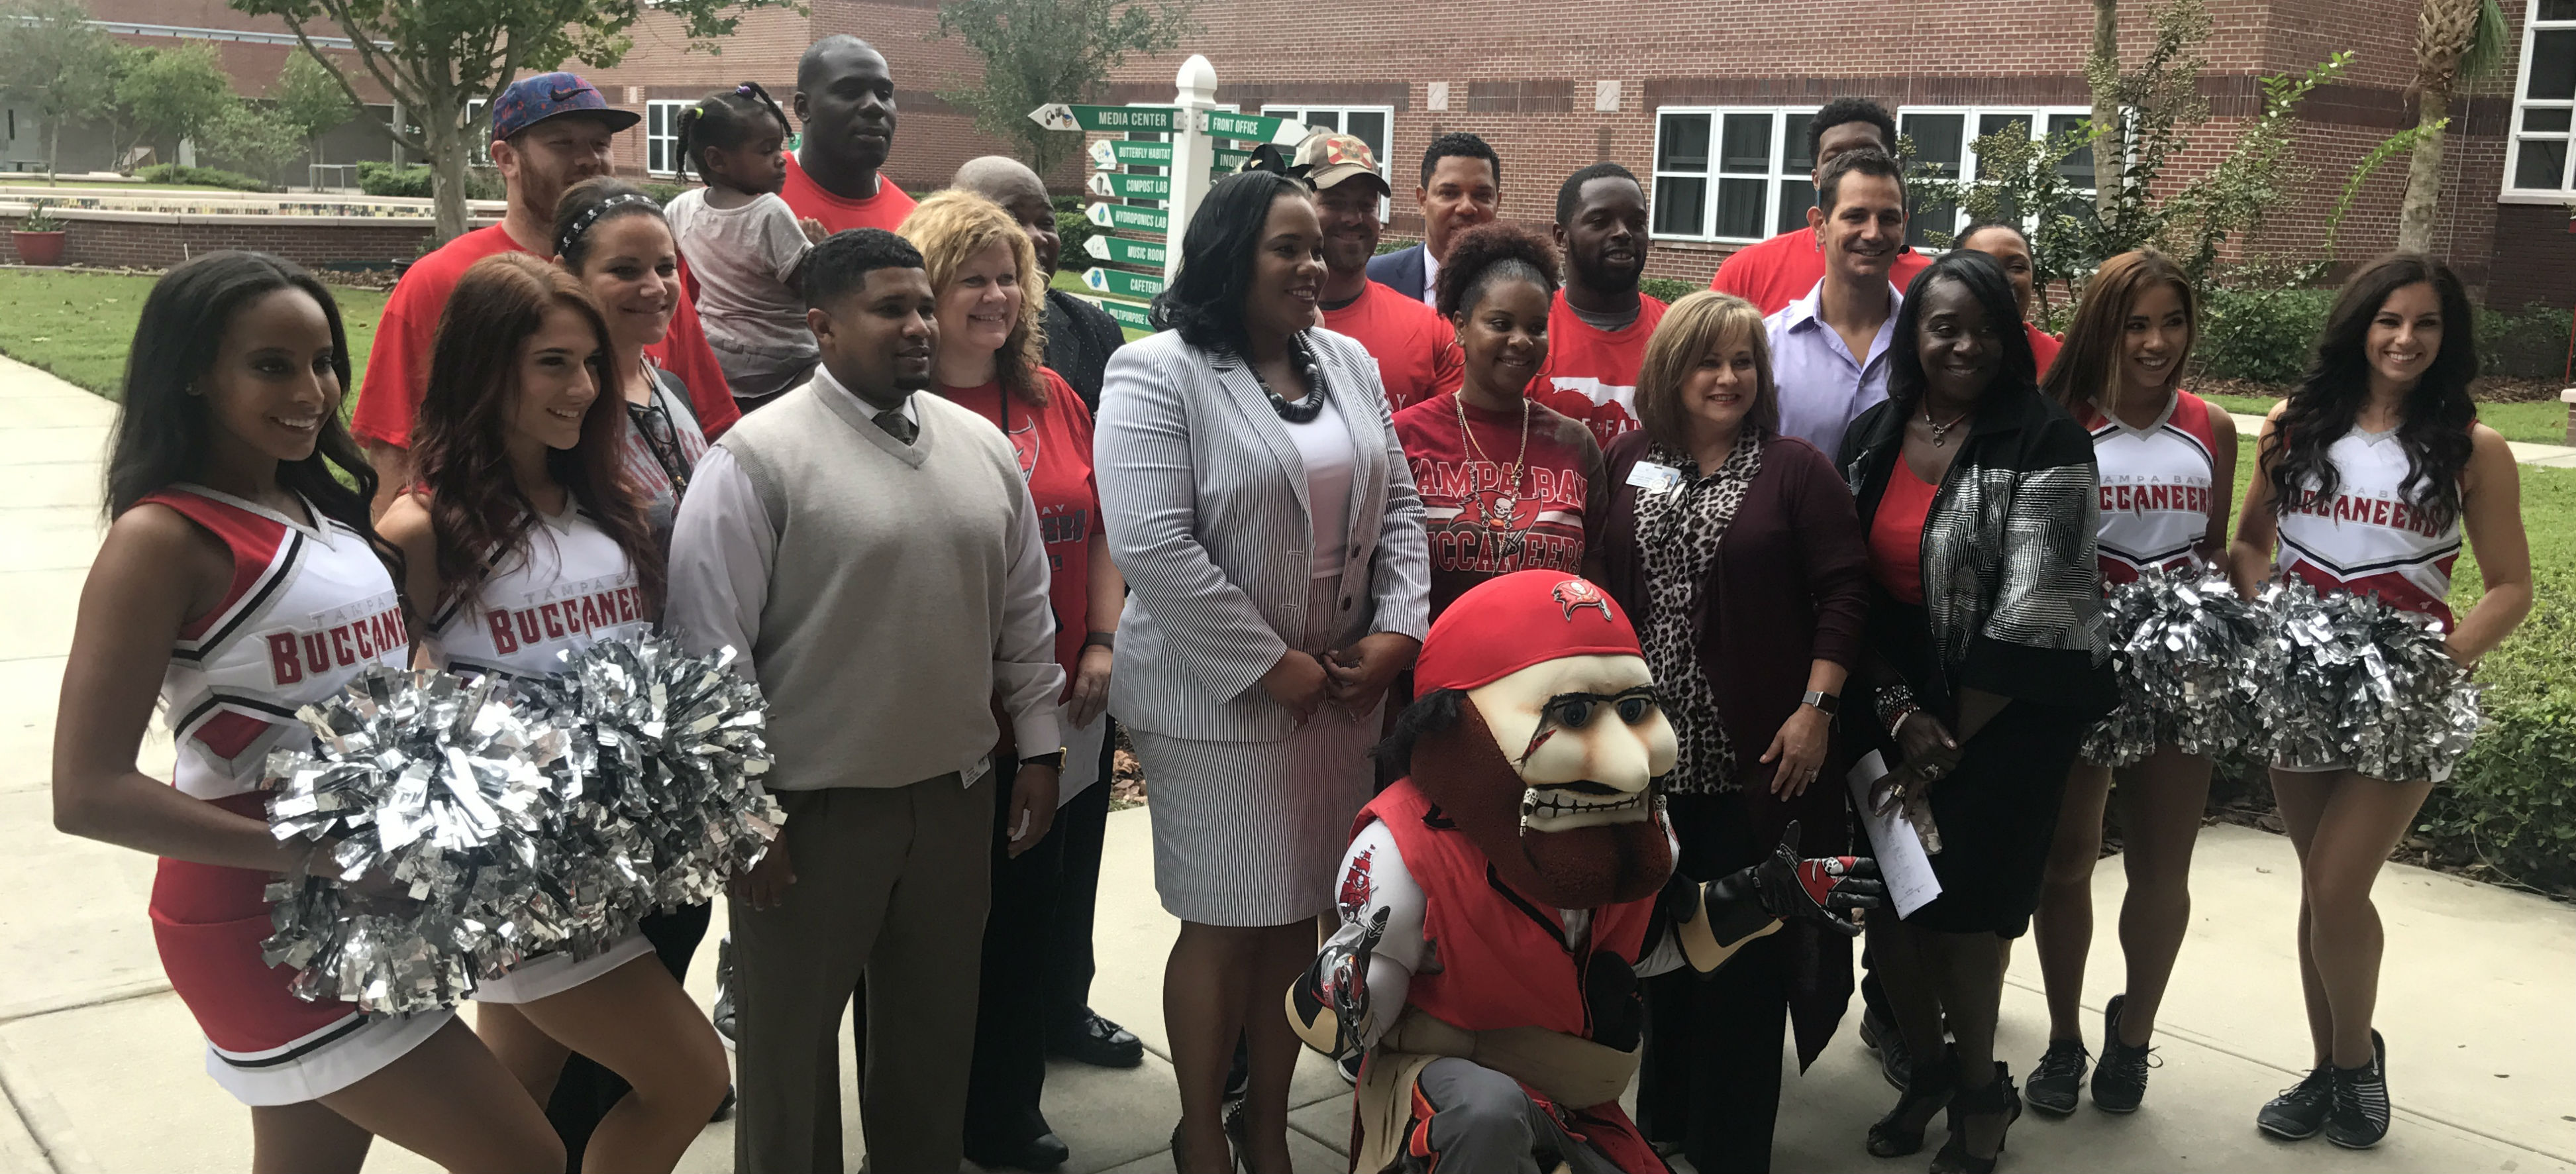 Image for Tampa Bay Buccaneers promote spirit and teamwork at Lockhart/Lee campus